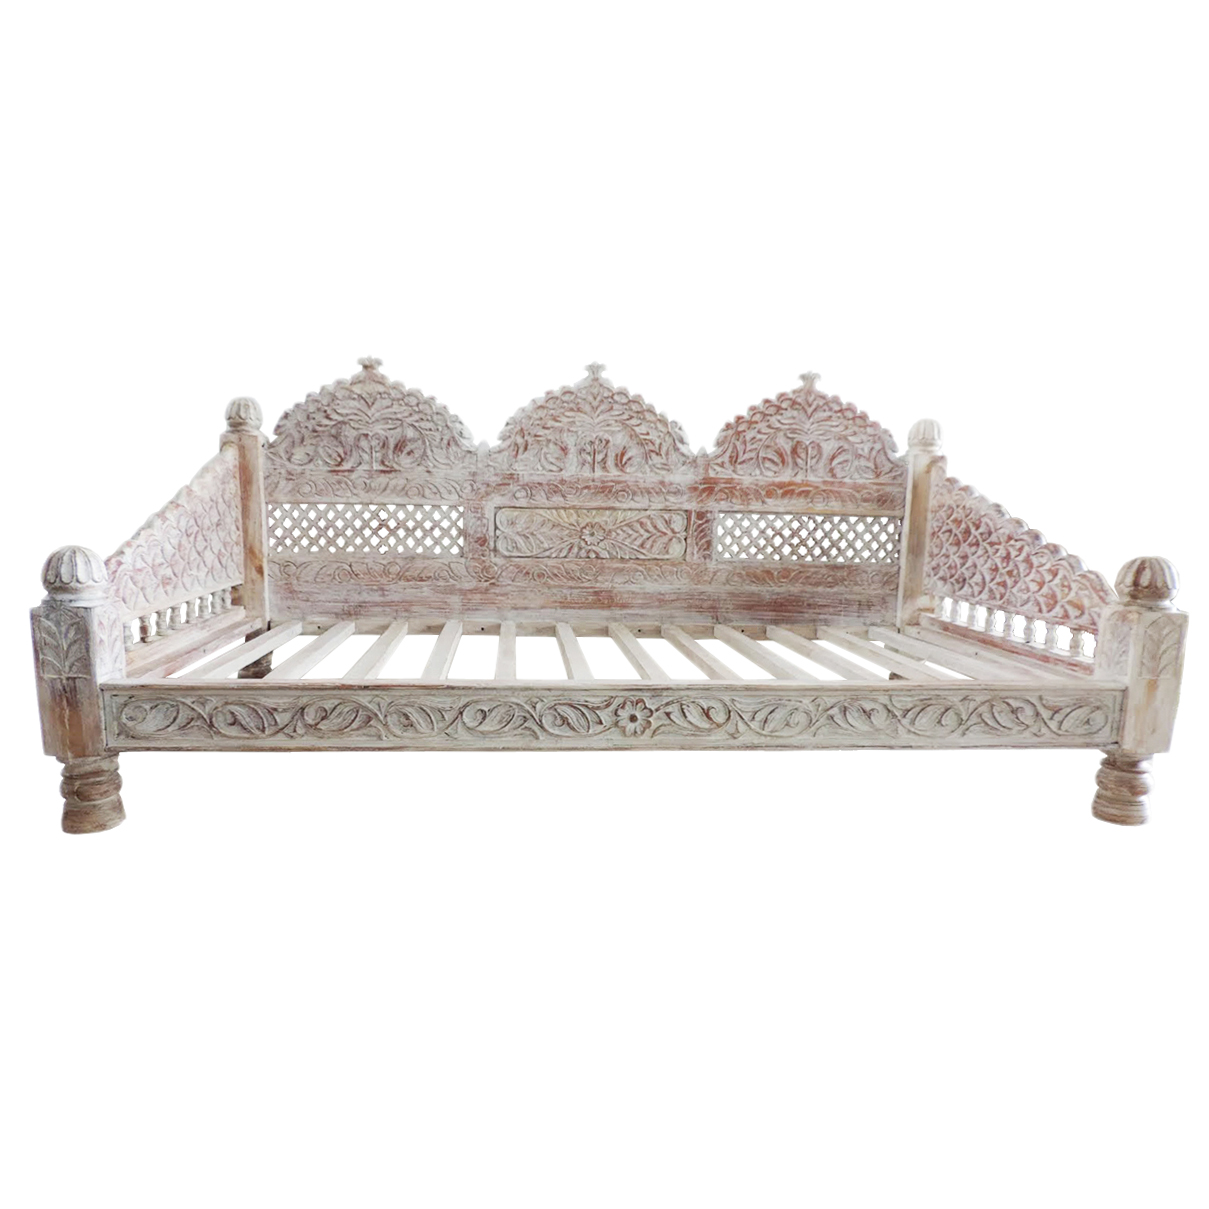 Magnificent Rajasthan White Wash Daybed Furniture Design Mix Gallery Cjindustries Chair Design For Home Cjindustriesco